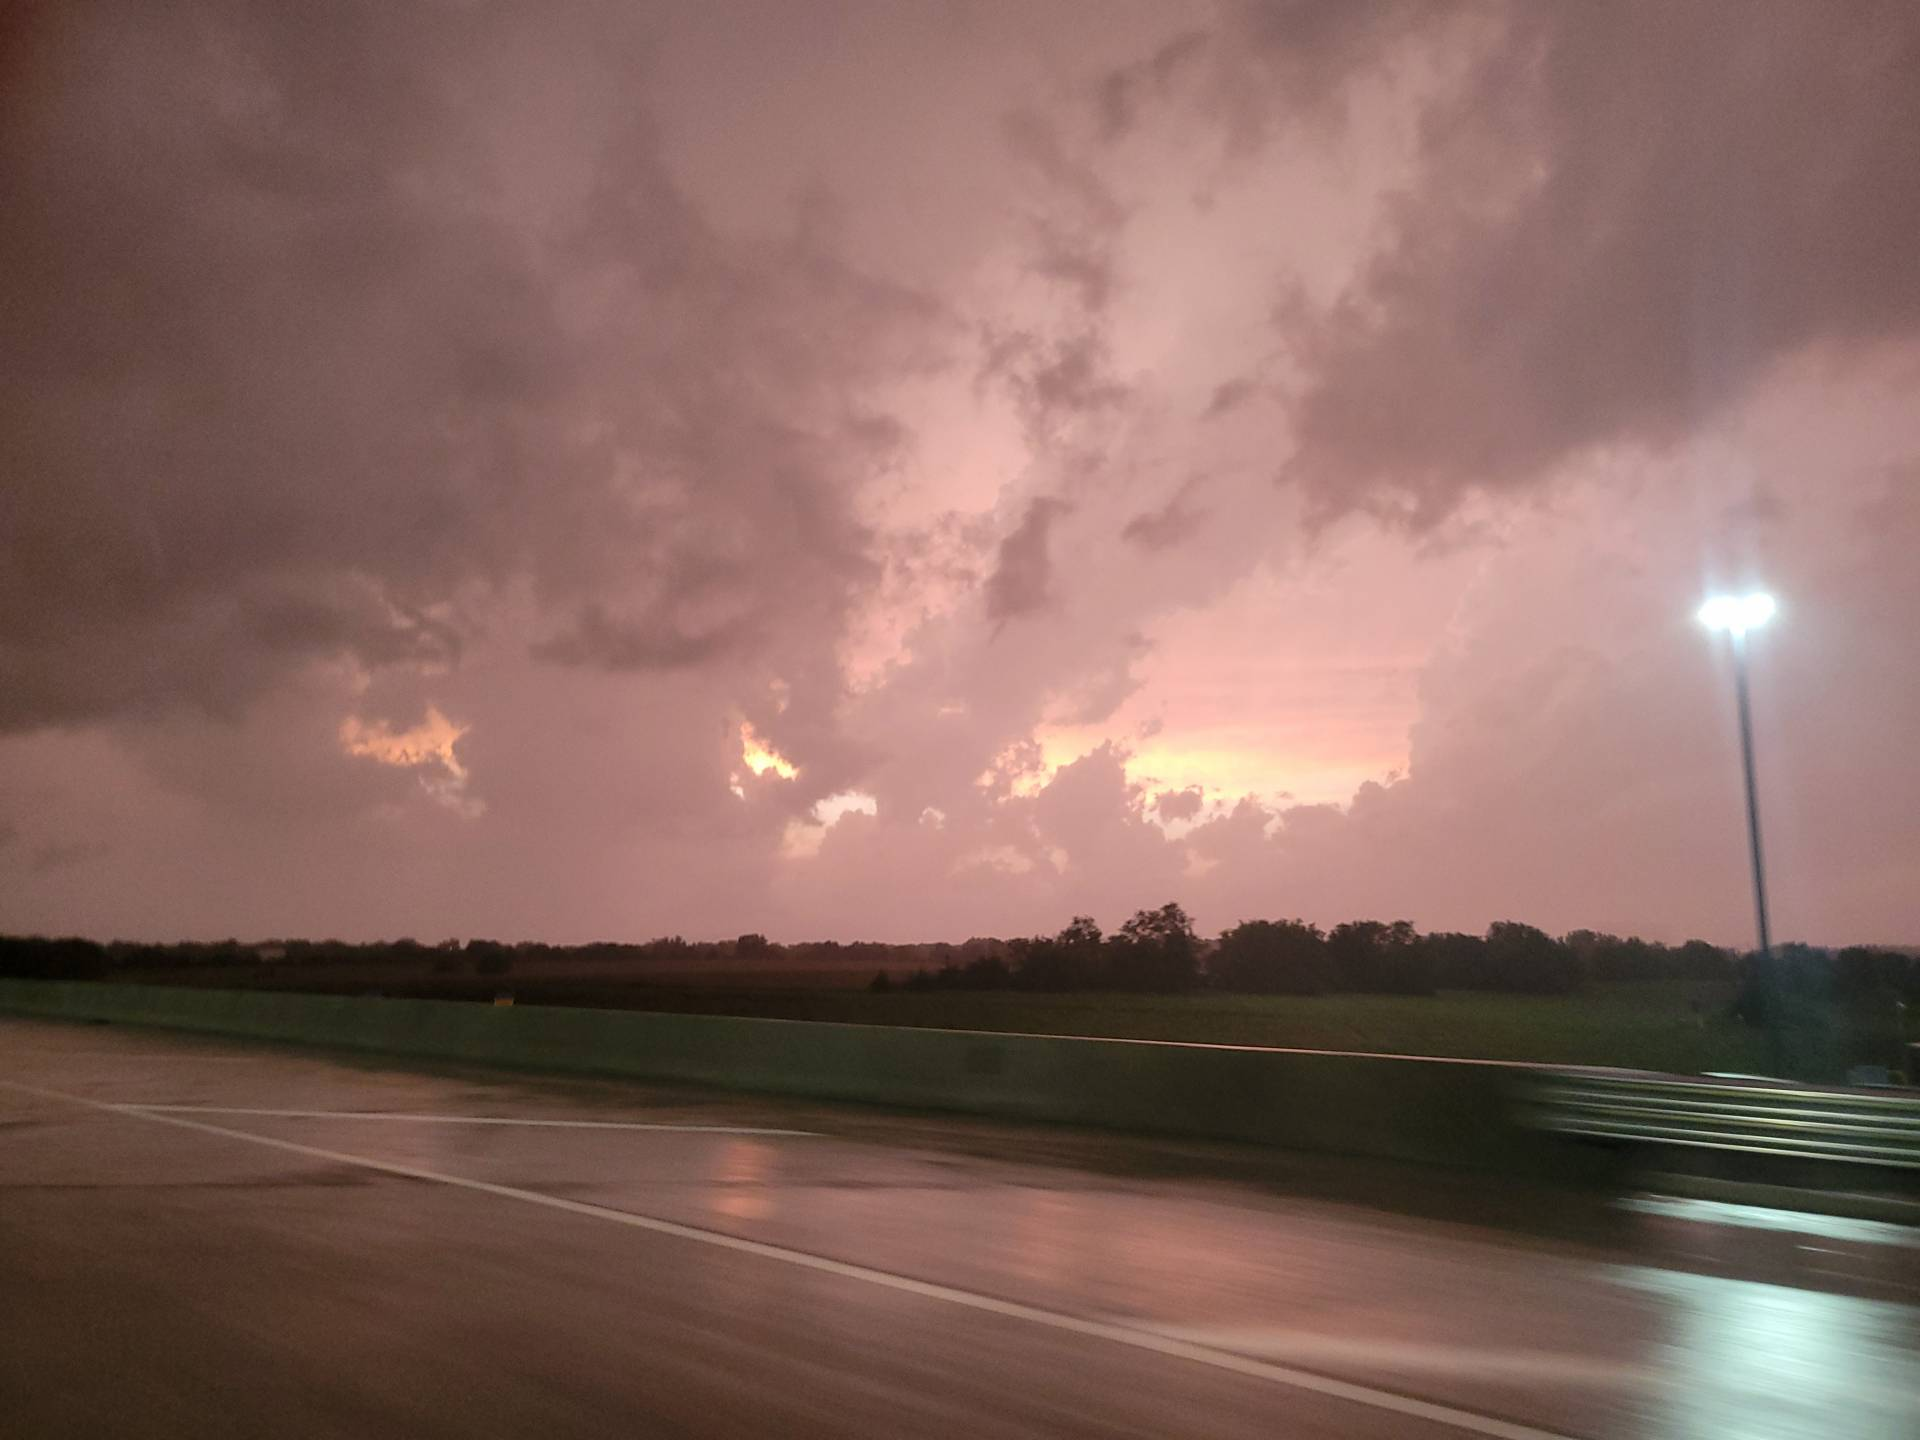 Sunset and storms over Wichita.